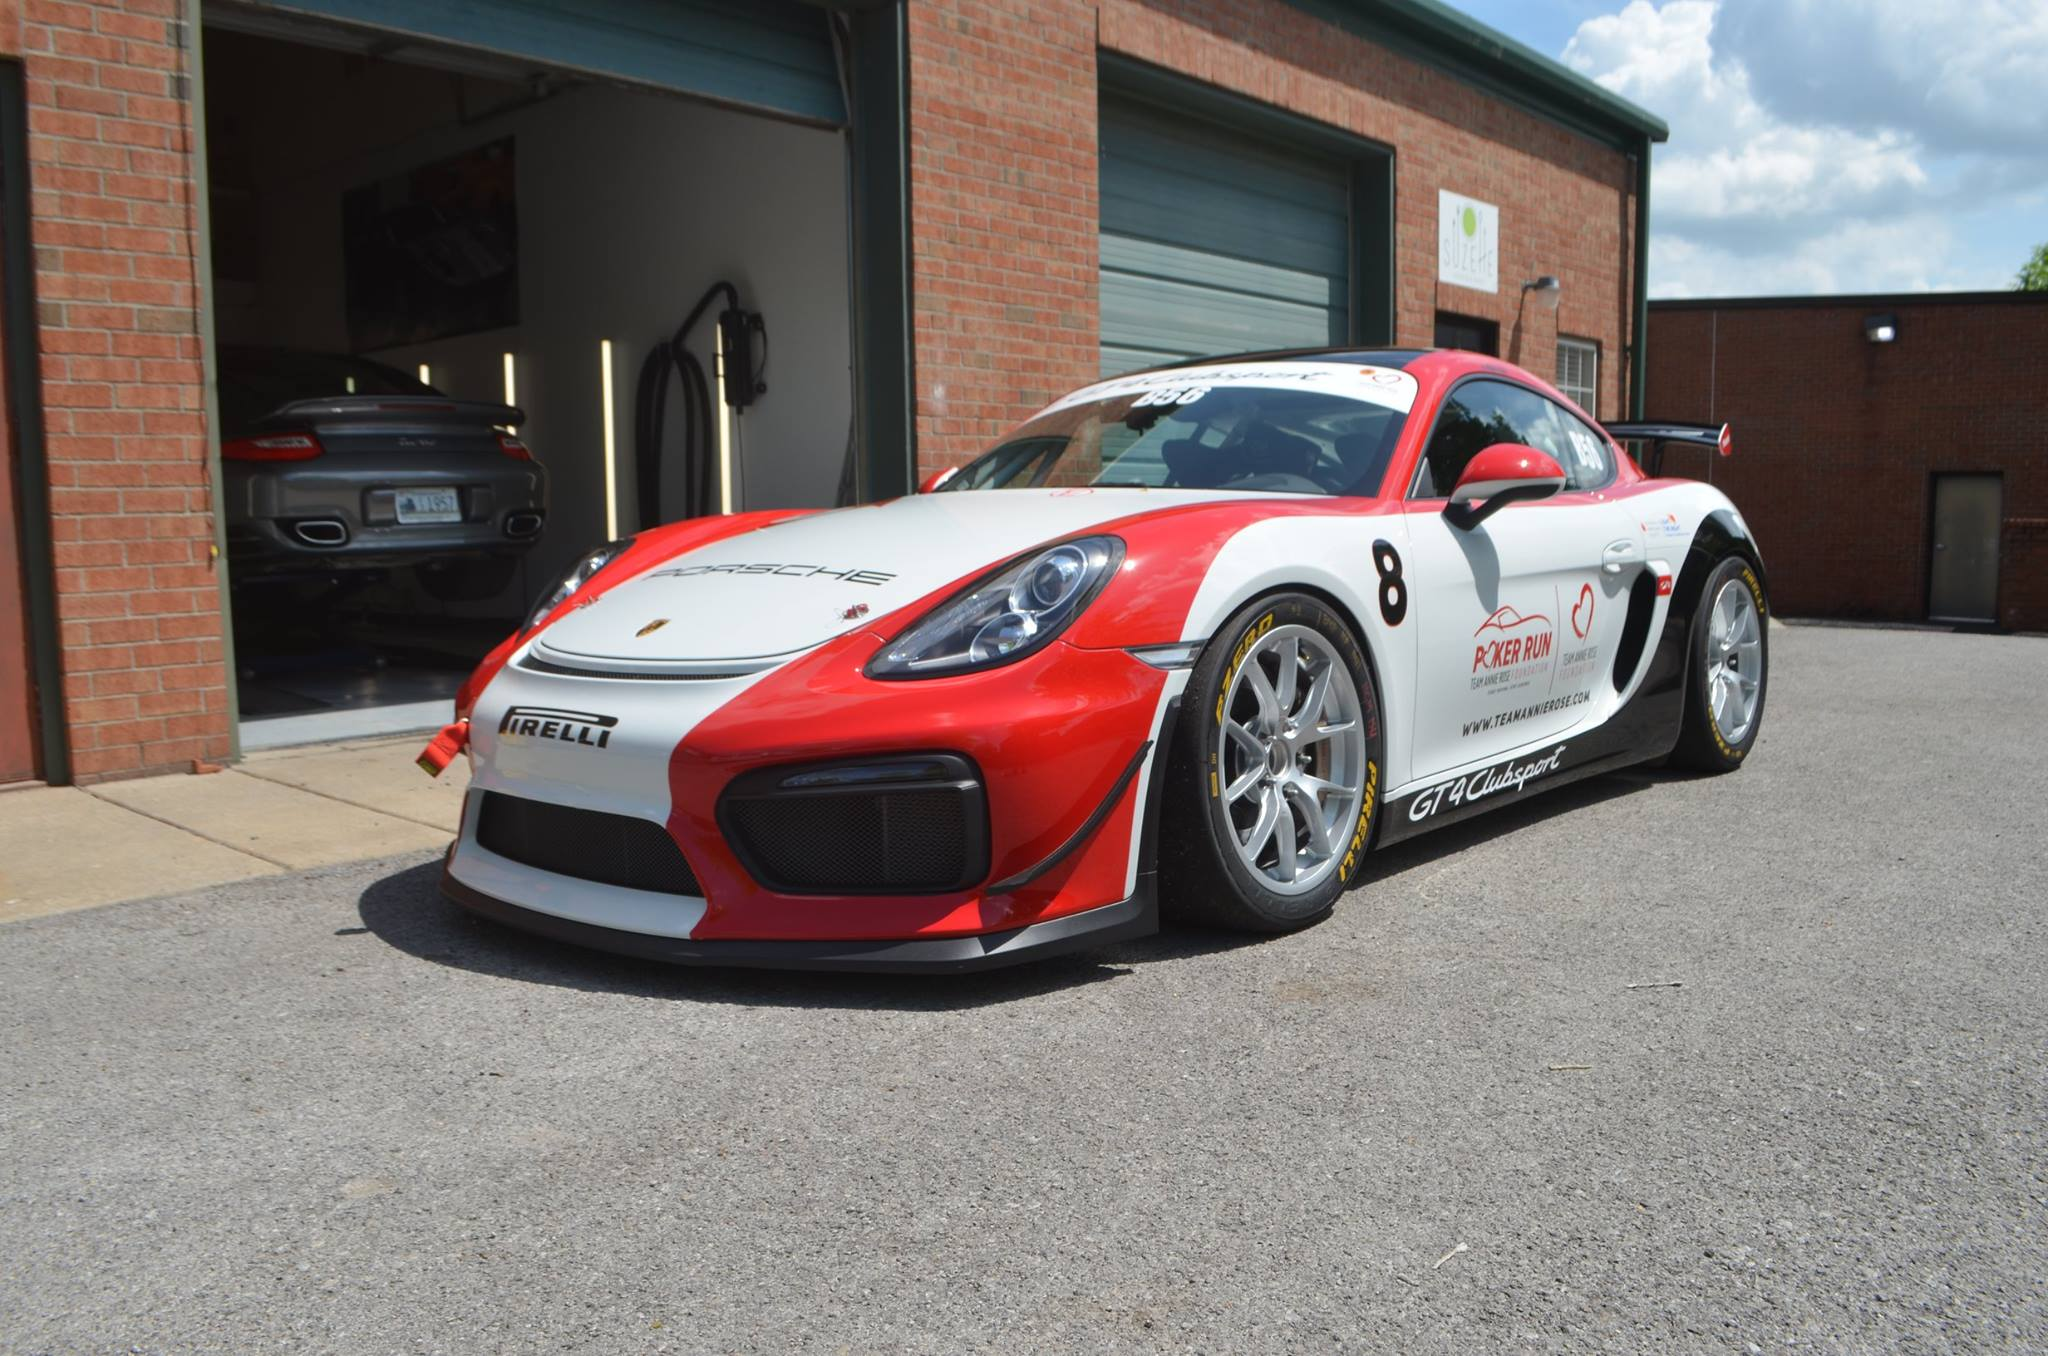 Porsche Cayman Clubsport: Full Body PPF